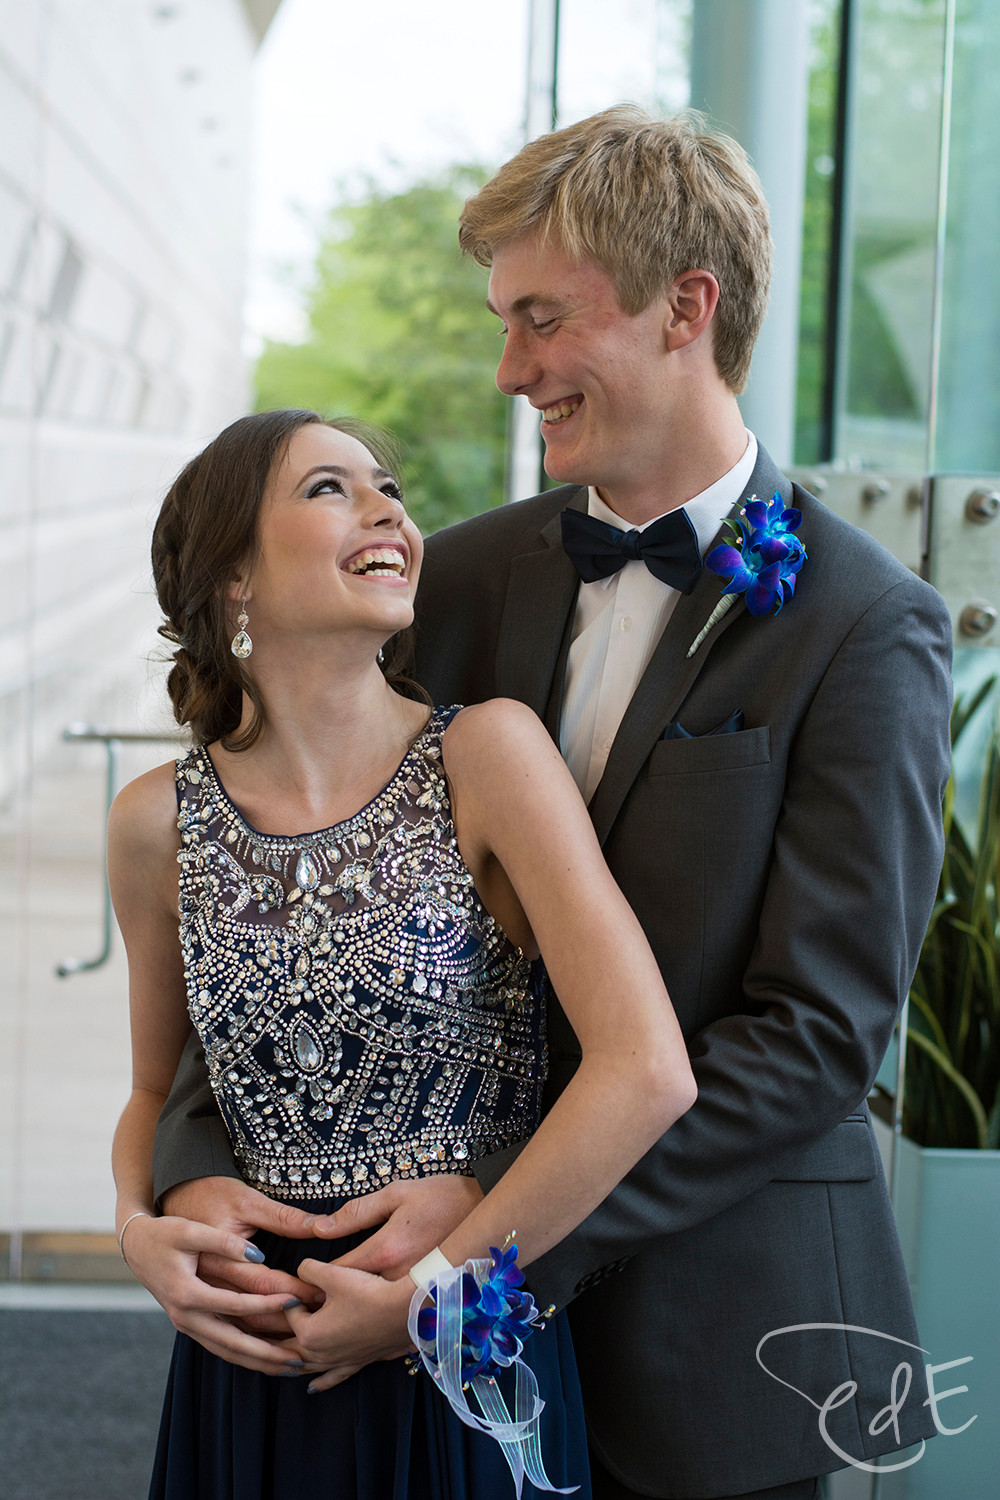 Indoor prom pictures at Grand Wayne Center